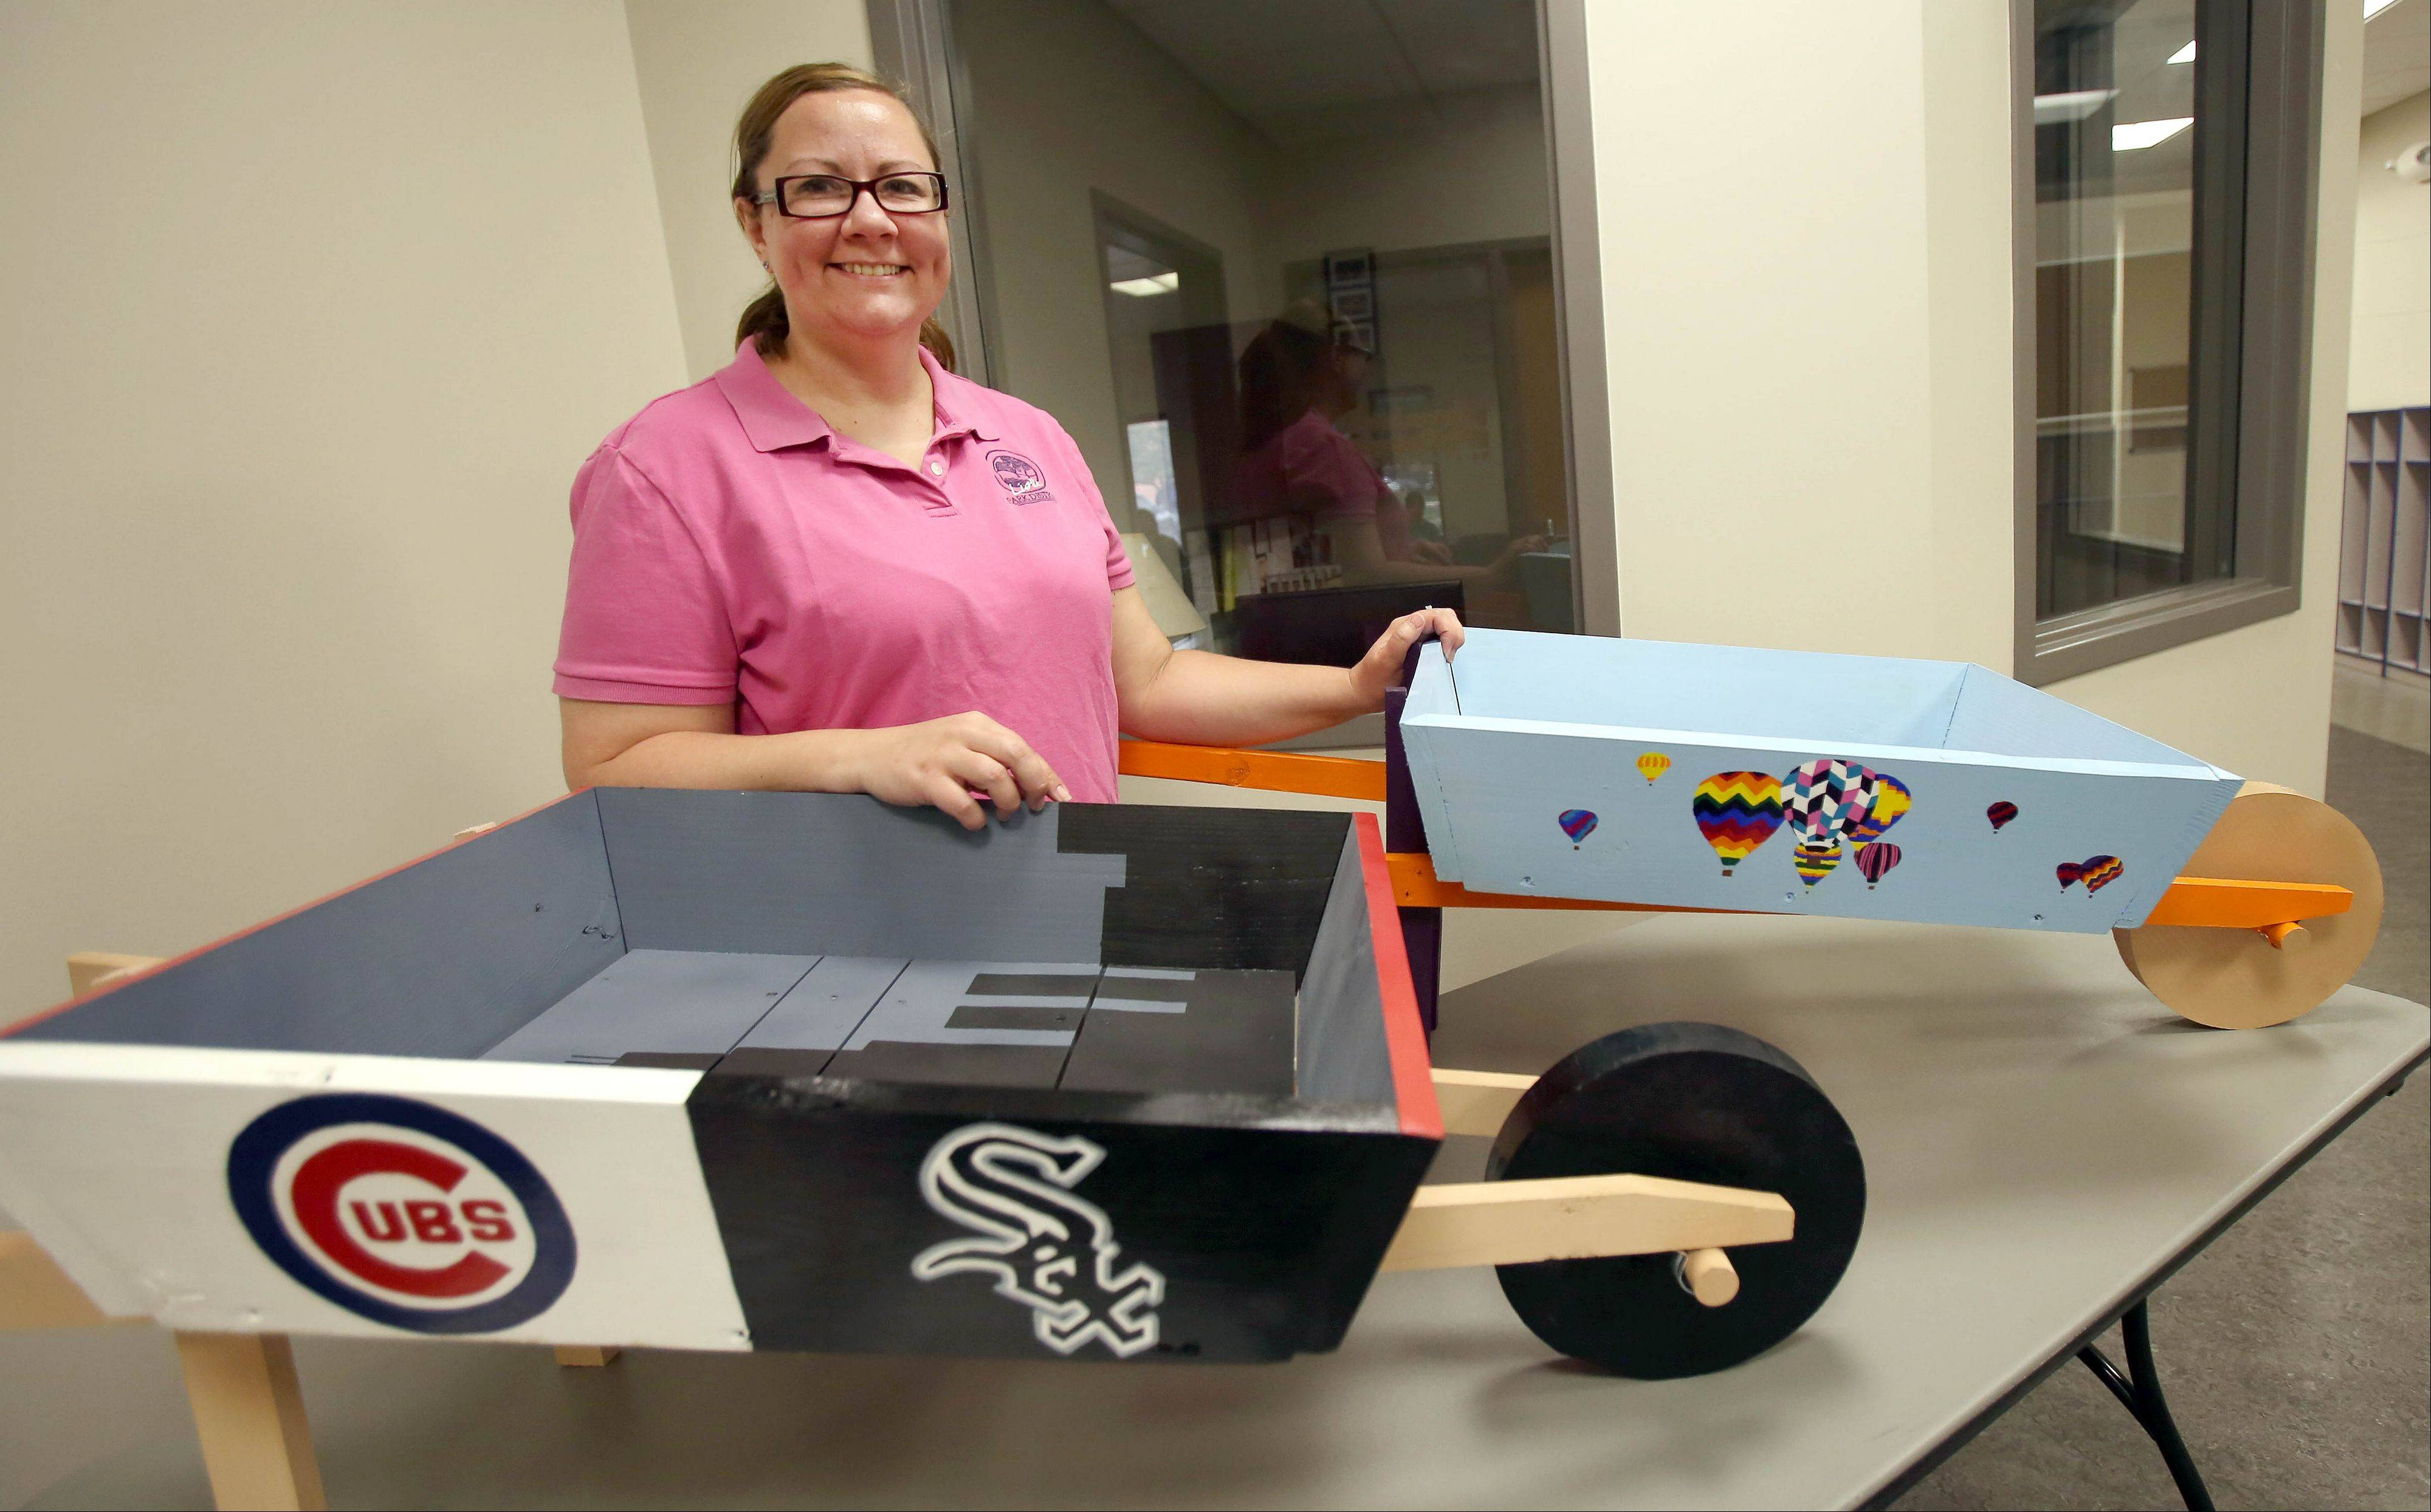 Lisle Park District event coordinator Wendy Nadeau is the driving force behind a public art project this year that features decorated wooden wheelbarrows.